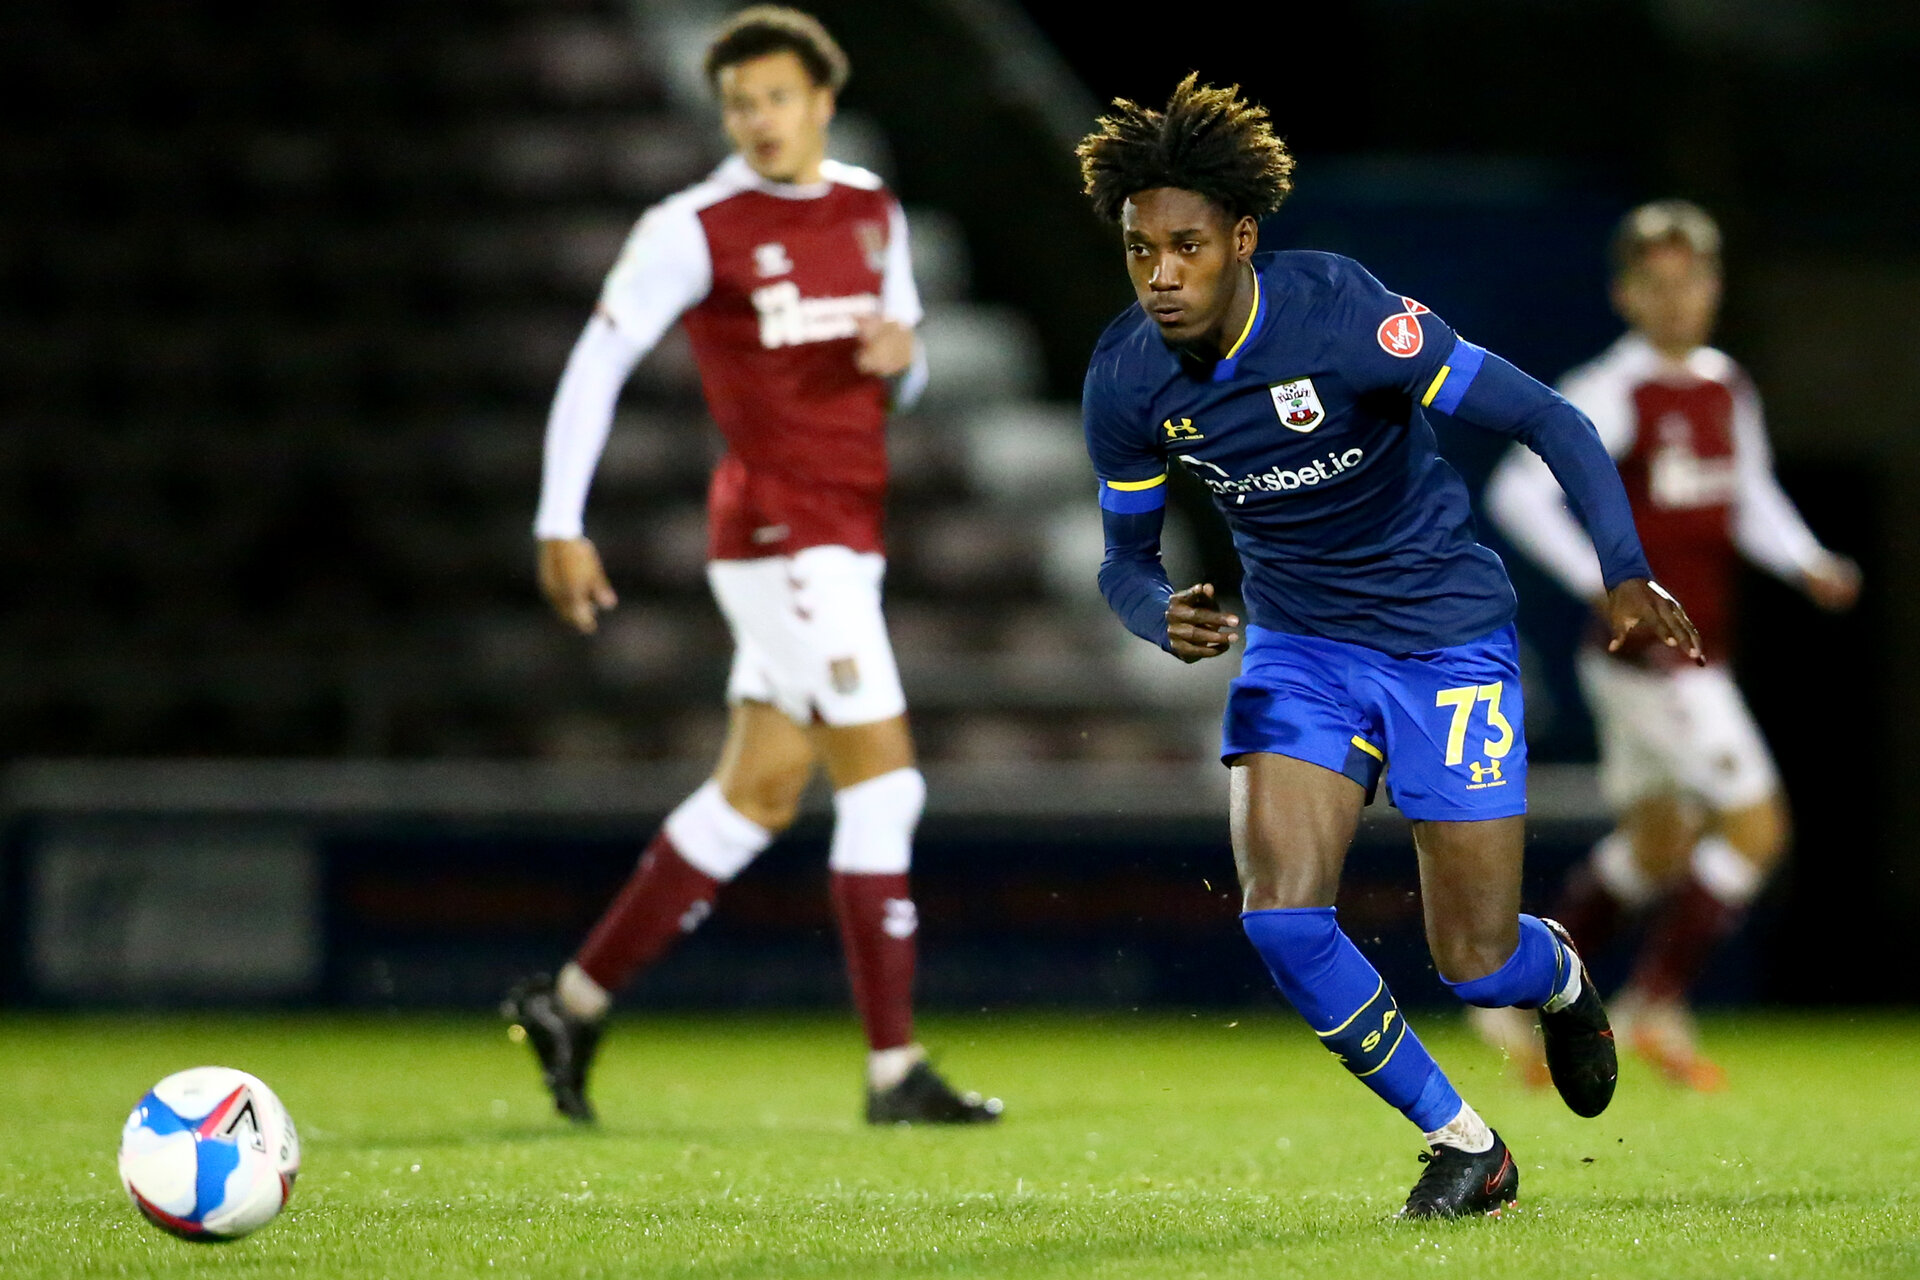 NORTHAMPTON, ENGLAND - OCTOBER 06: Ramello Mitchell of Southampton during EFL Cup match between Northampton Town FC and Southampton FC B Team at the PTS Academy Stadium on October 6, 2020 in Northampton, England. (Photo by Isabelle Field/Southampton FC via Getty Images)